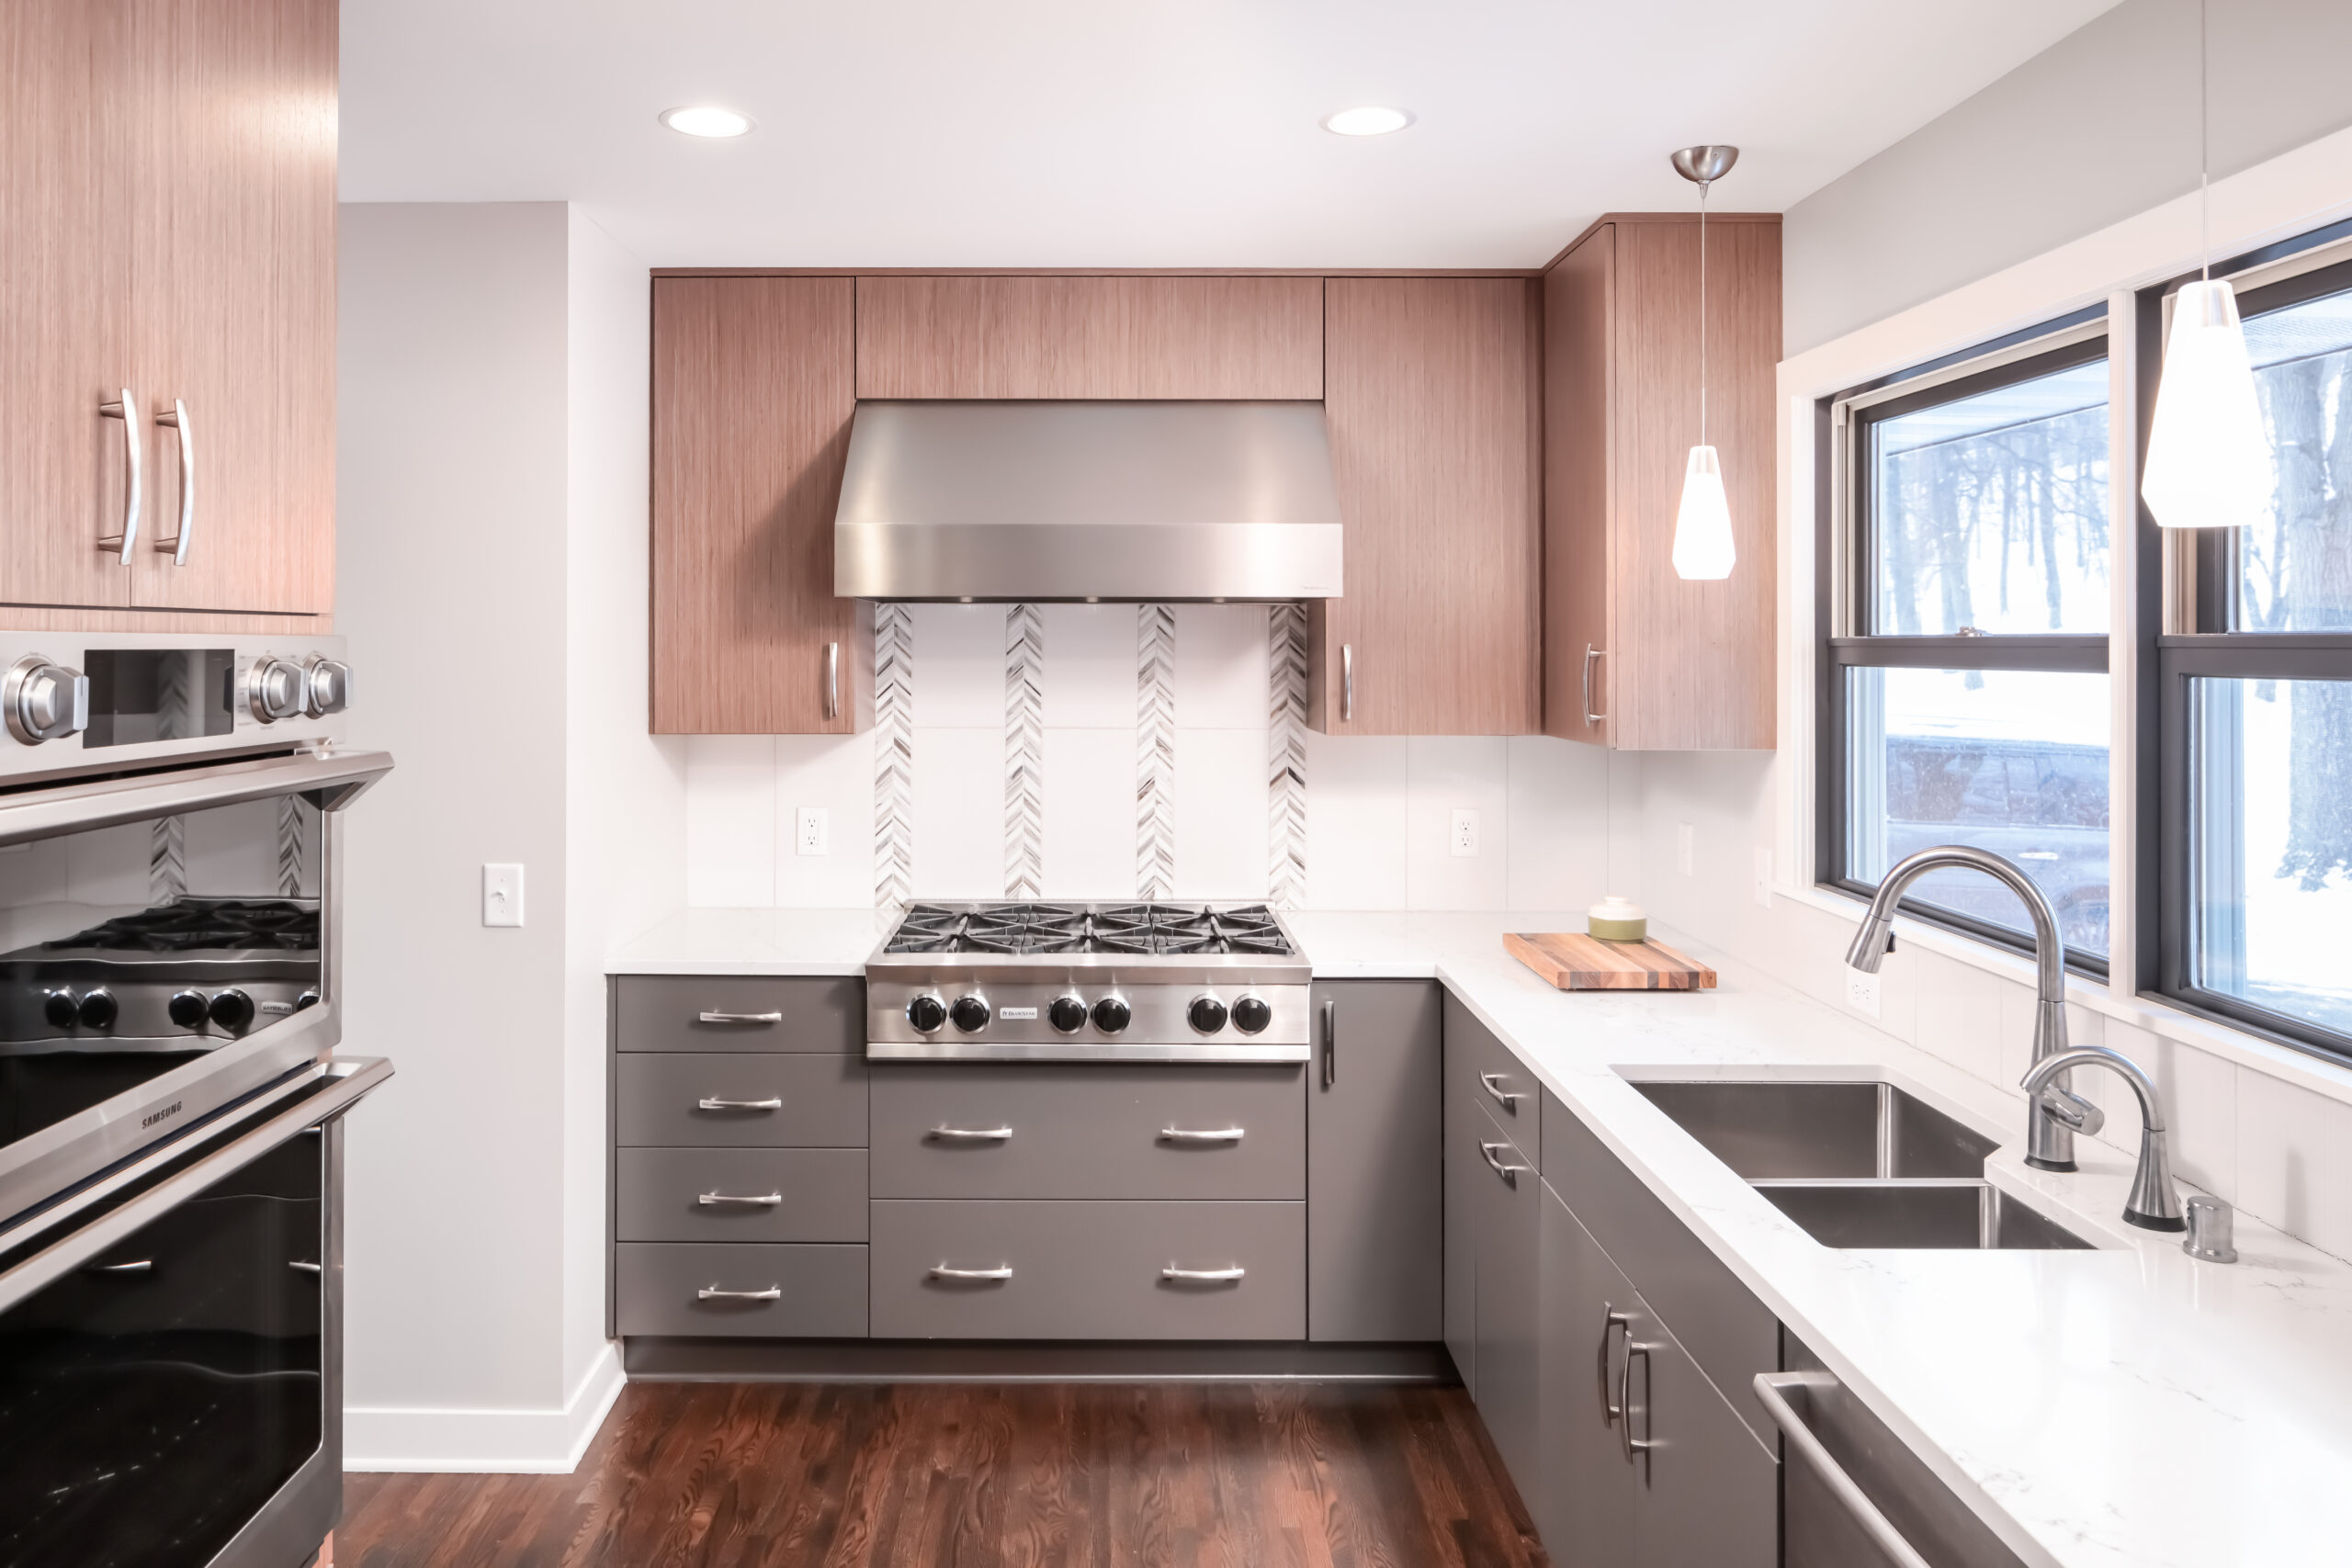 Key Kitchen Design Trends: Embracing Your Personalized Kitchen Style